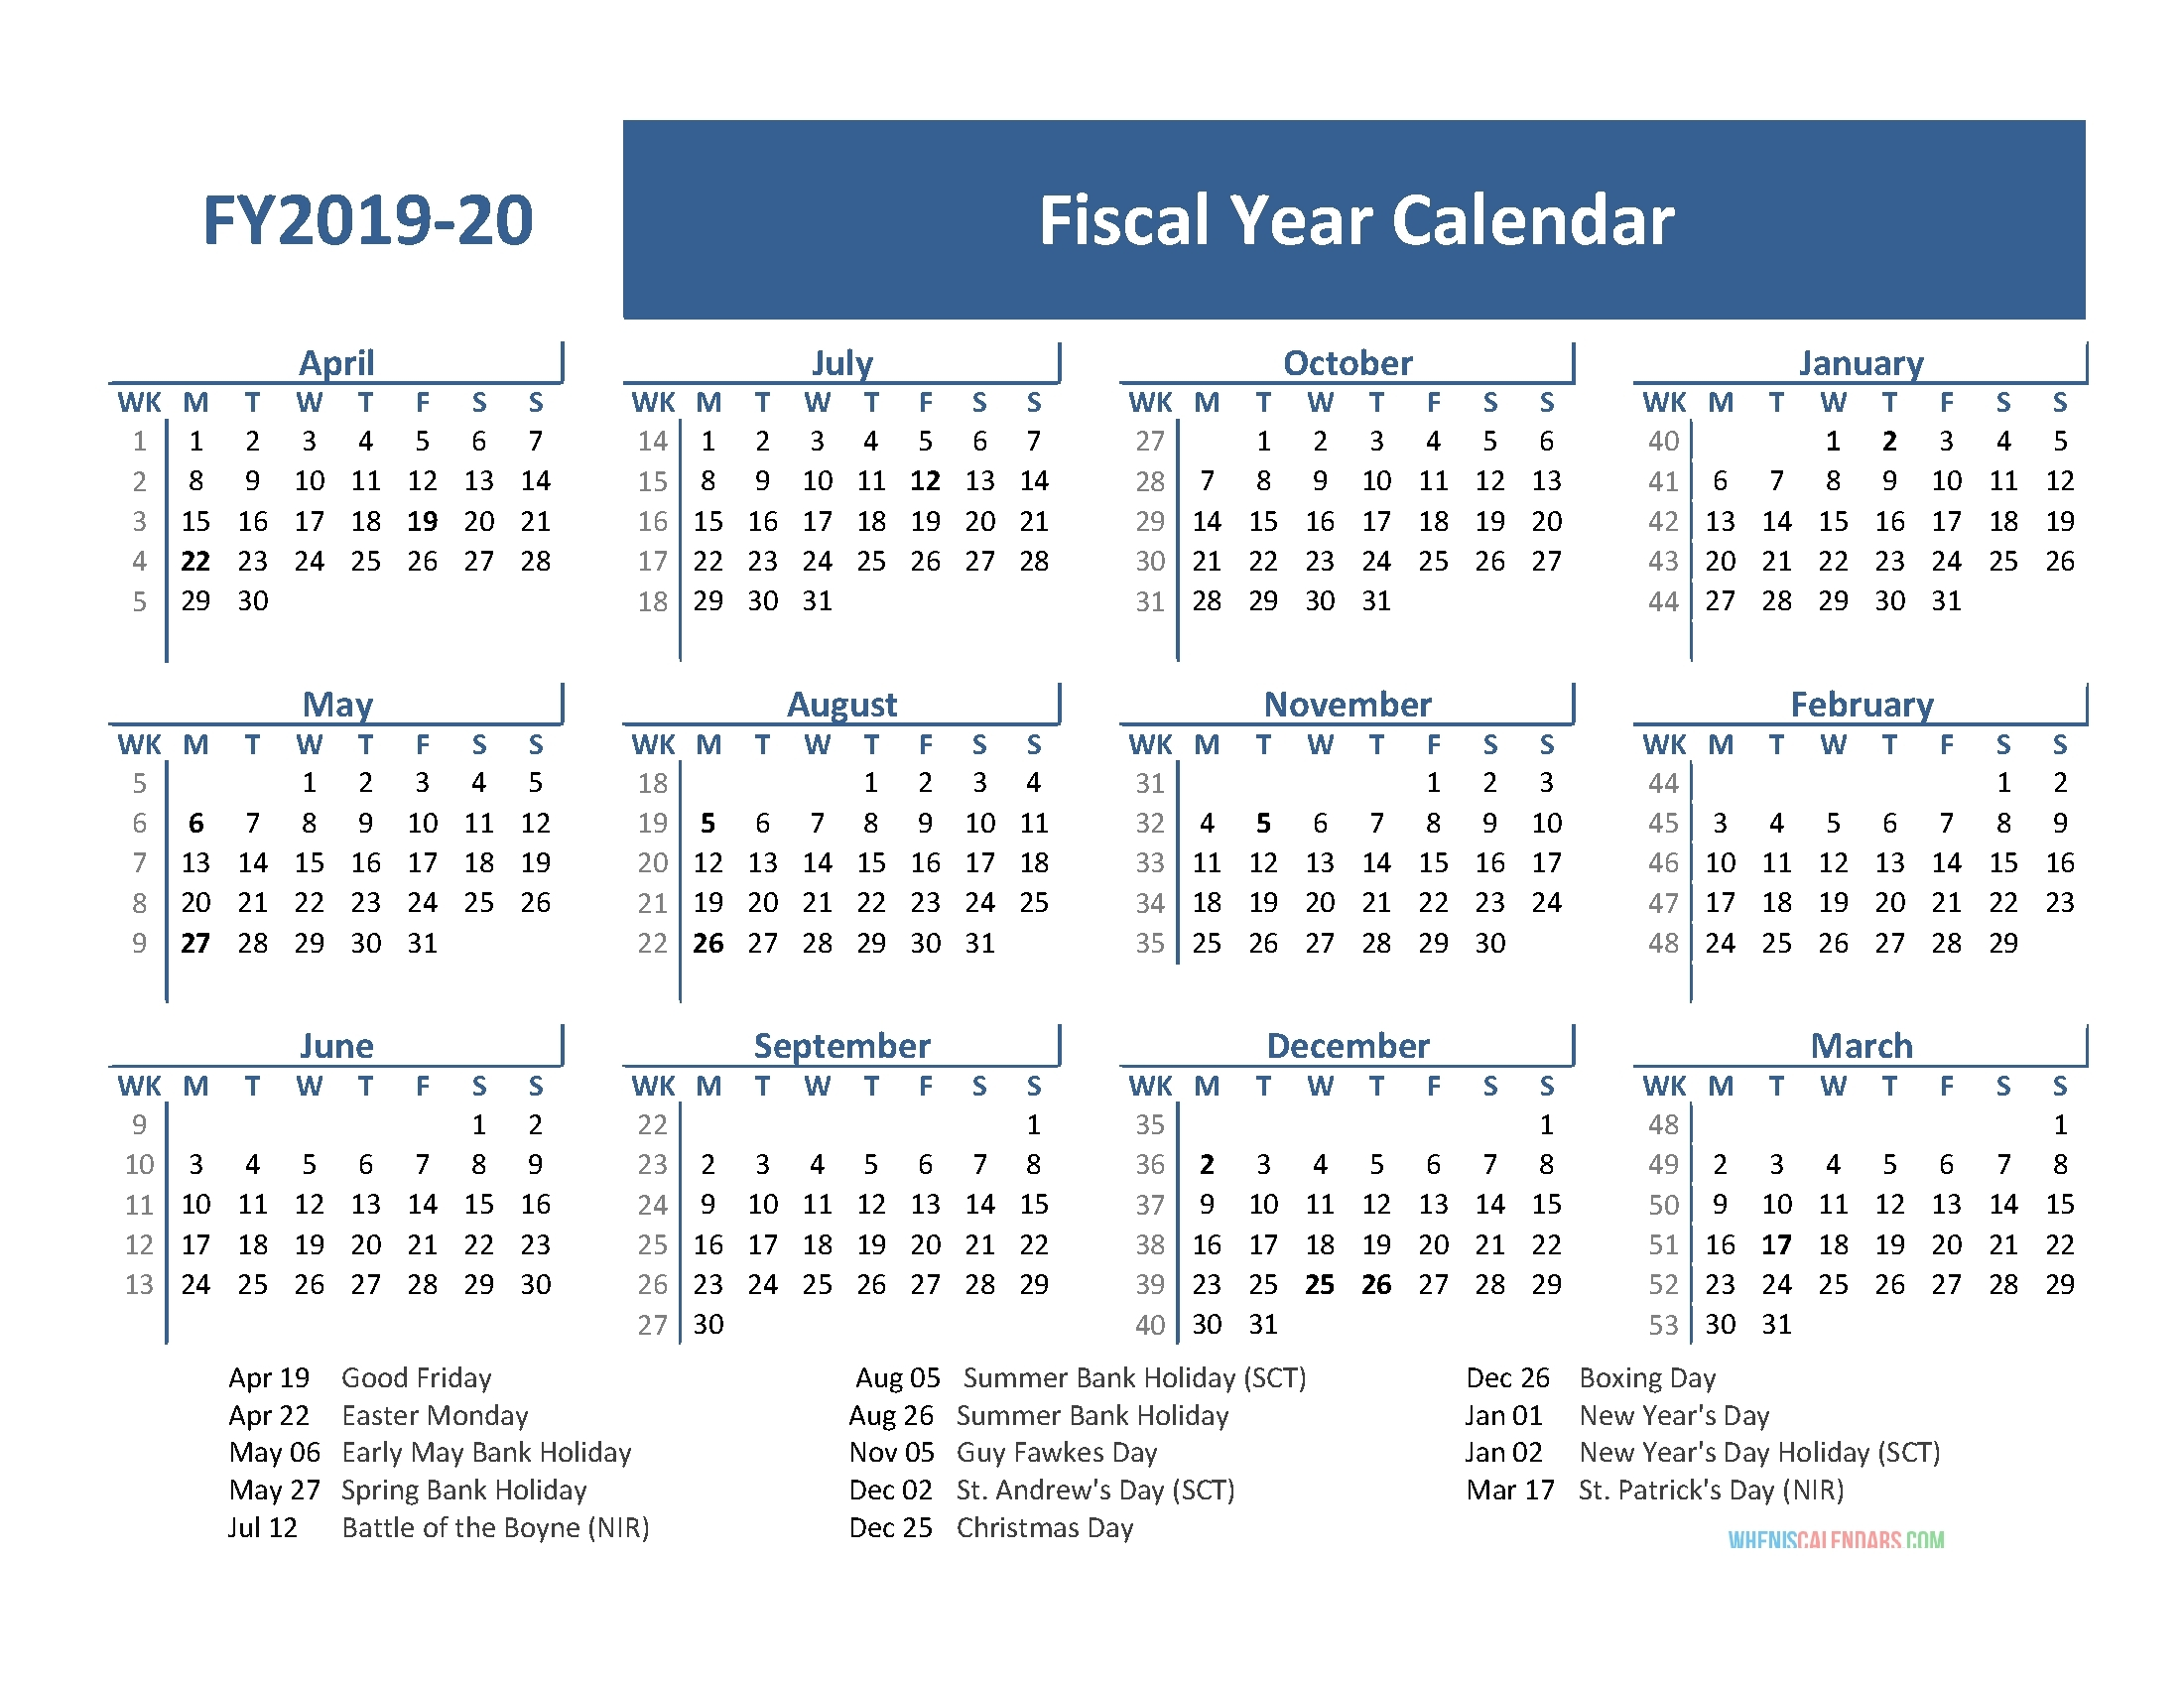 2019-2020 Calendar Financial Week Numbers - Calendar inside Week Numbers For Financial Year 2019